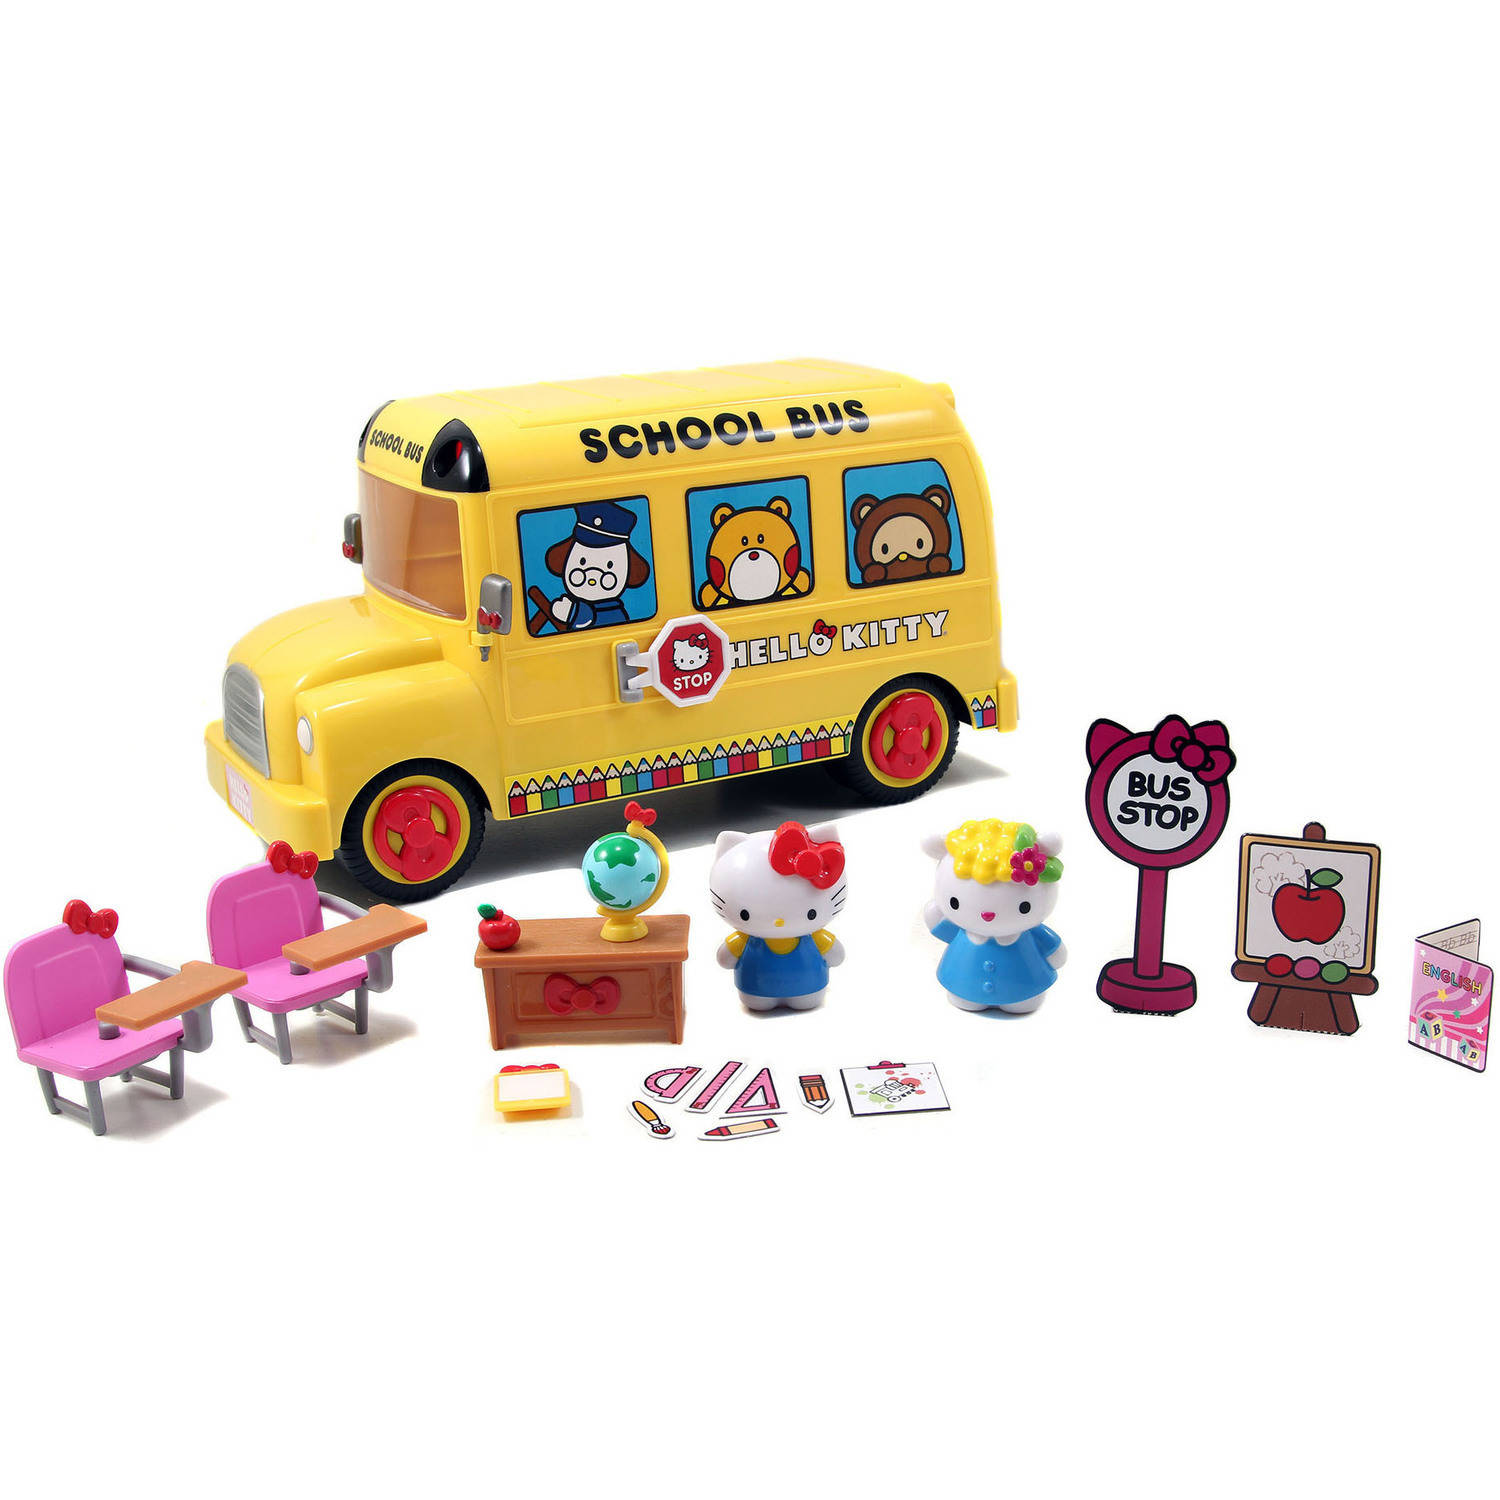 Jada Toys Hello Kitty Deluxe School Bus Playset by Jada Toys, Inc.